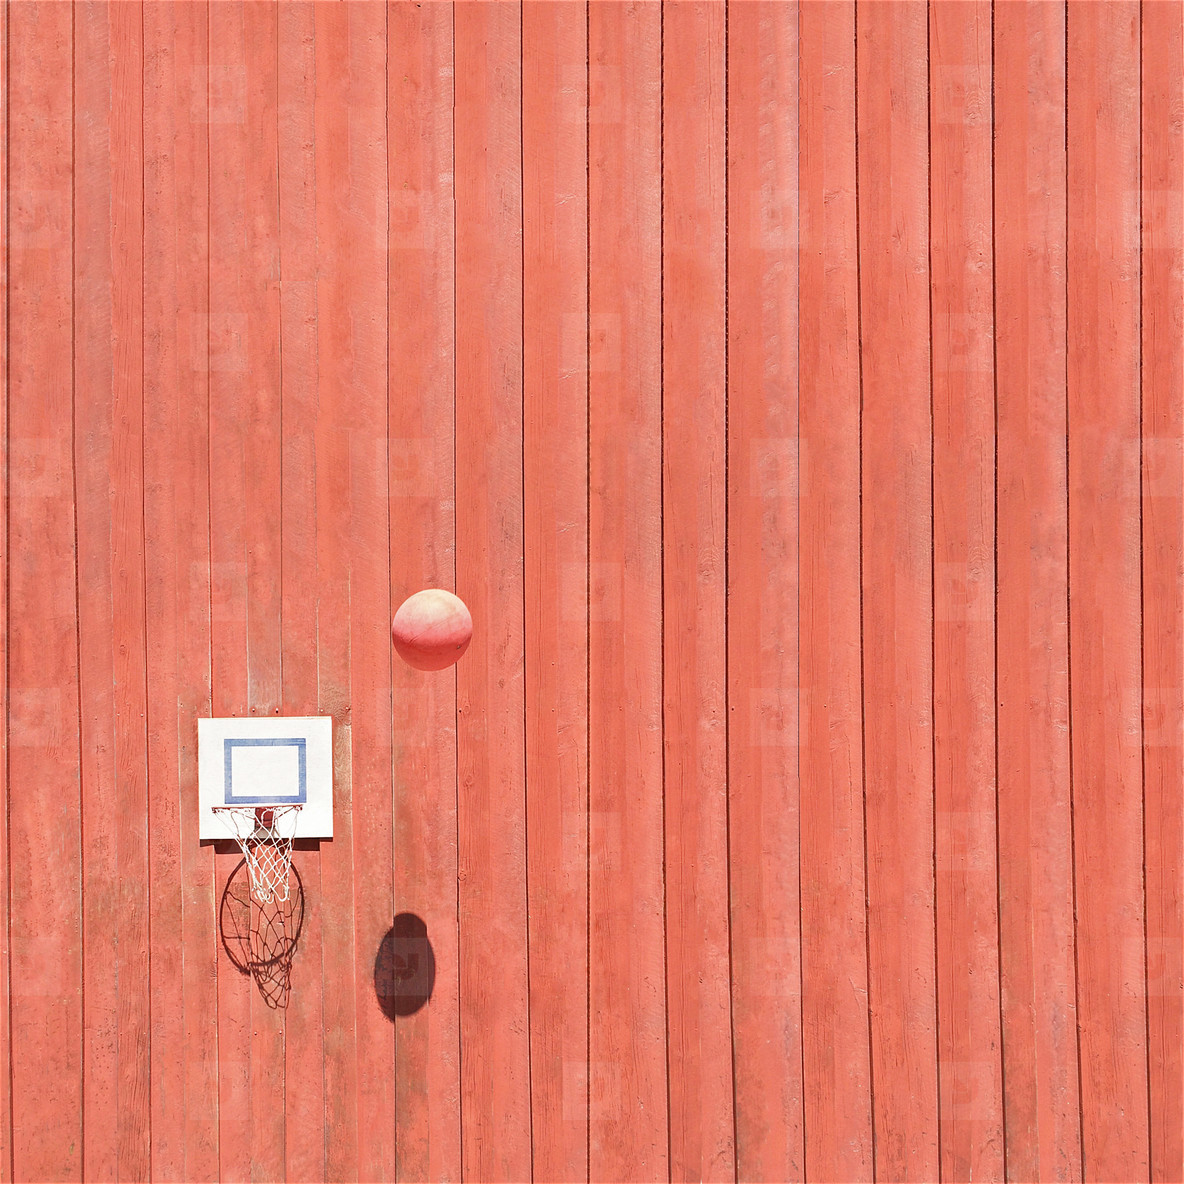 Basketball in the air